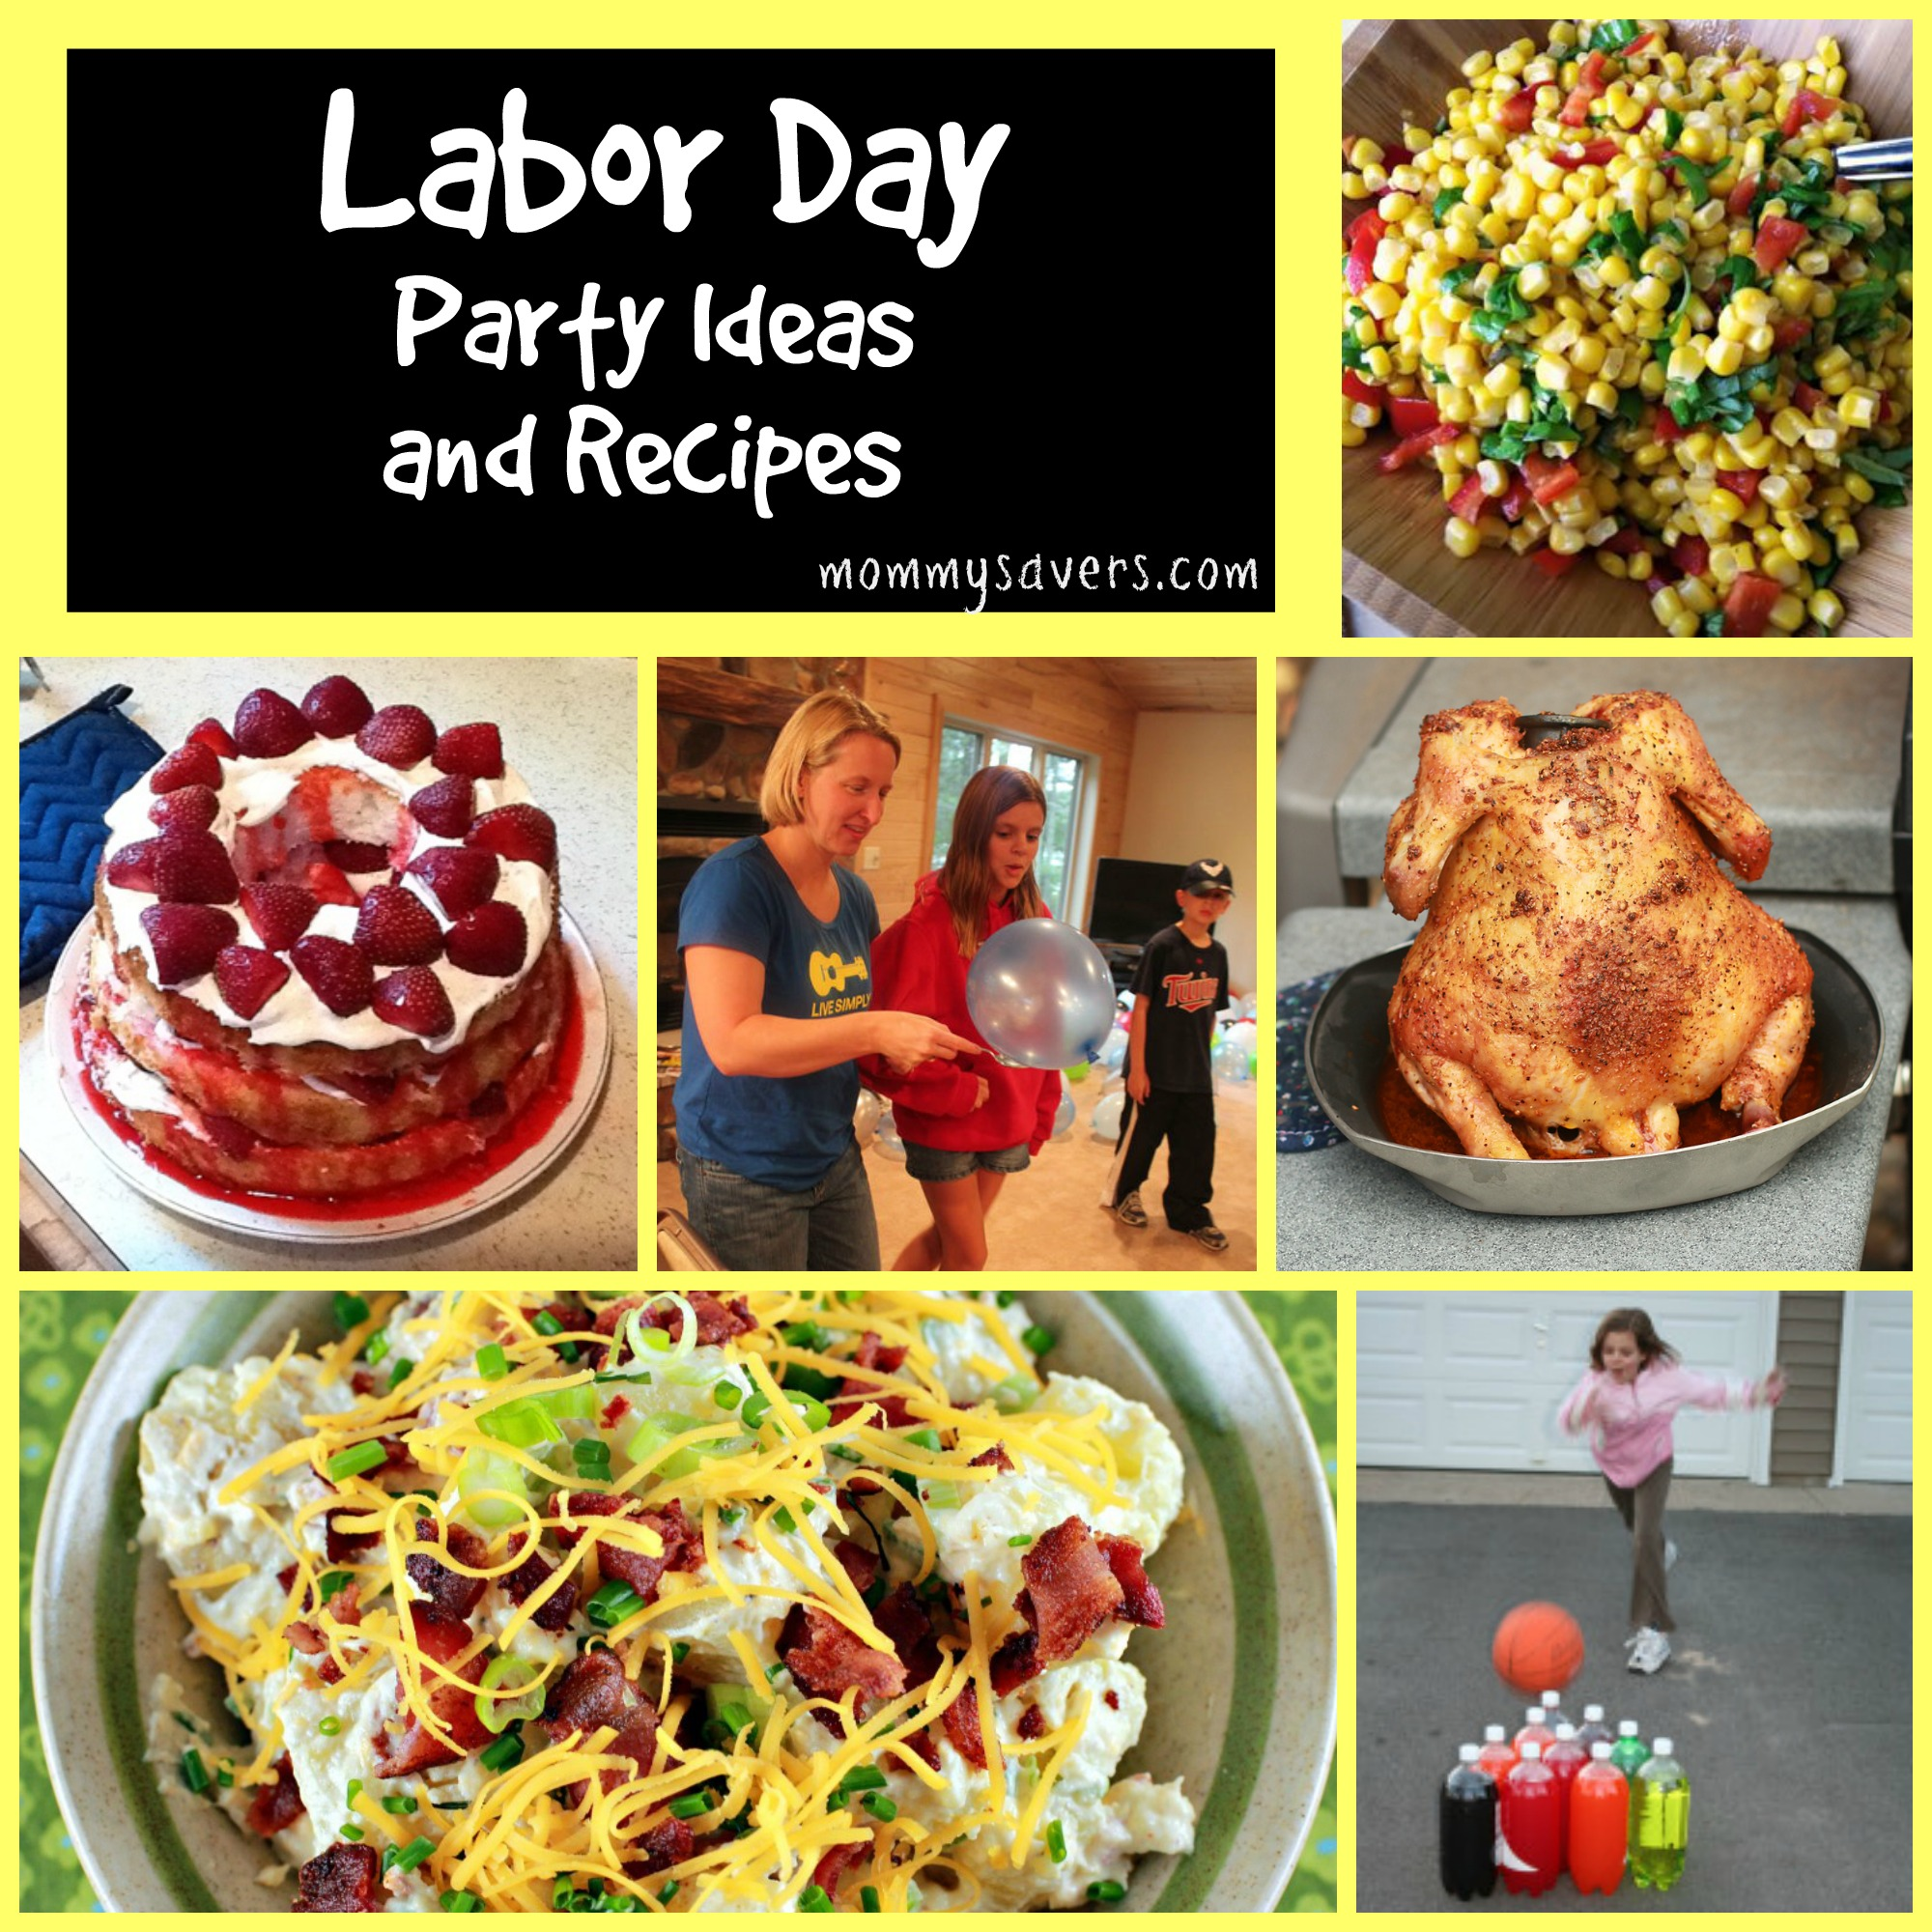 labor day party ideas and 25+ recipes - mommysavers